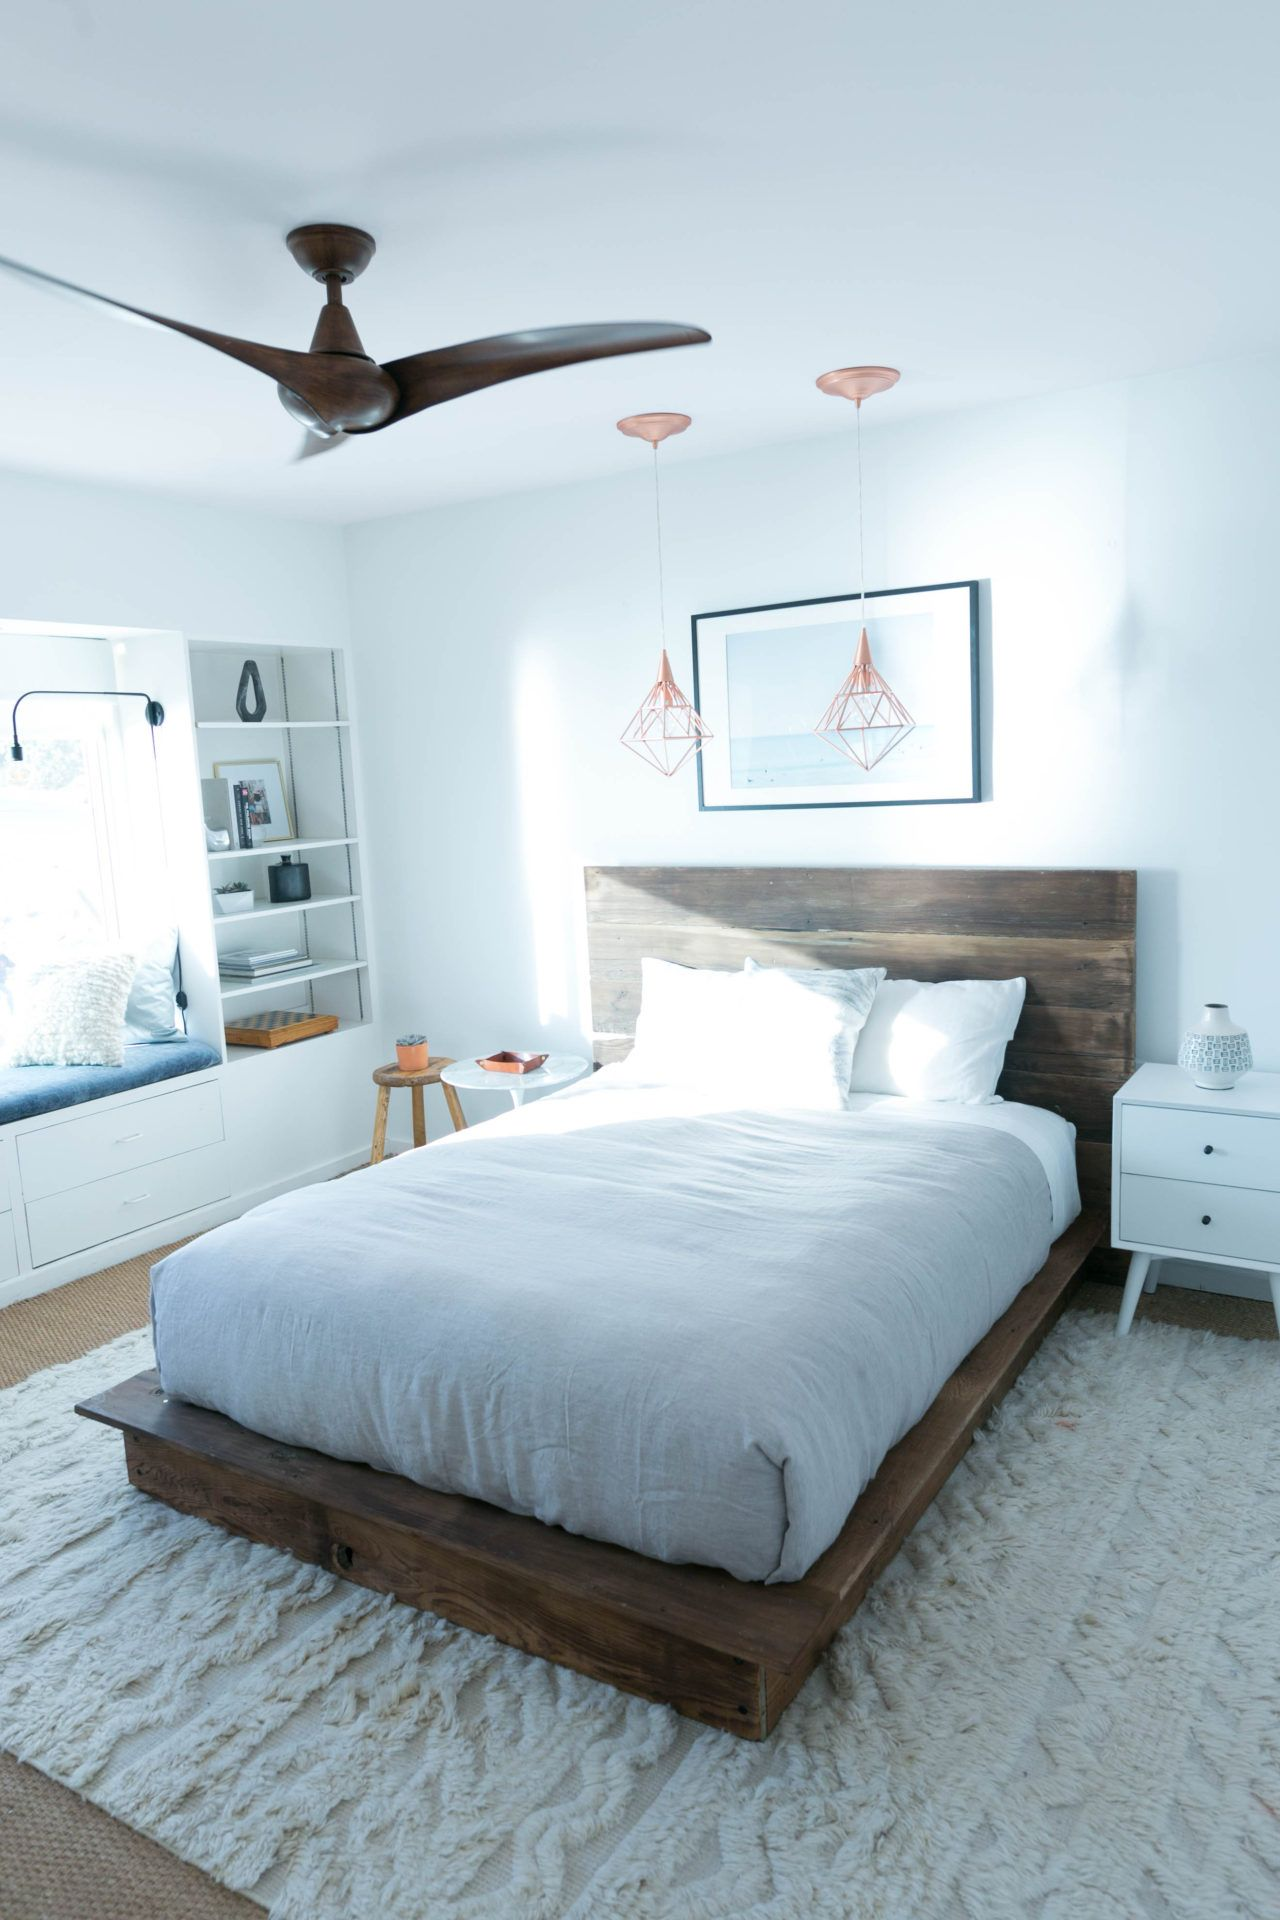 Diy wood platform bed frame diy reclaimed wood platform bed  platform beds bedrooms and blog